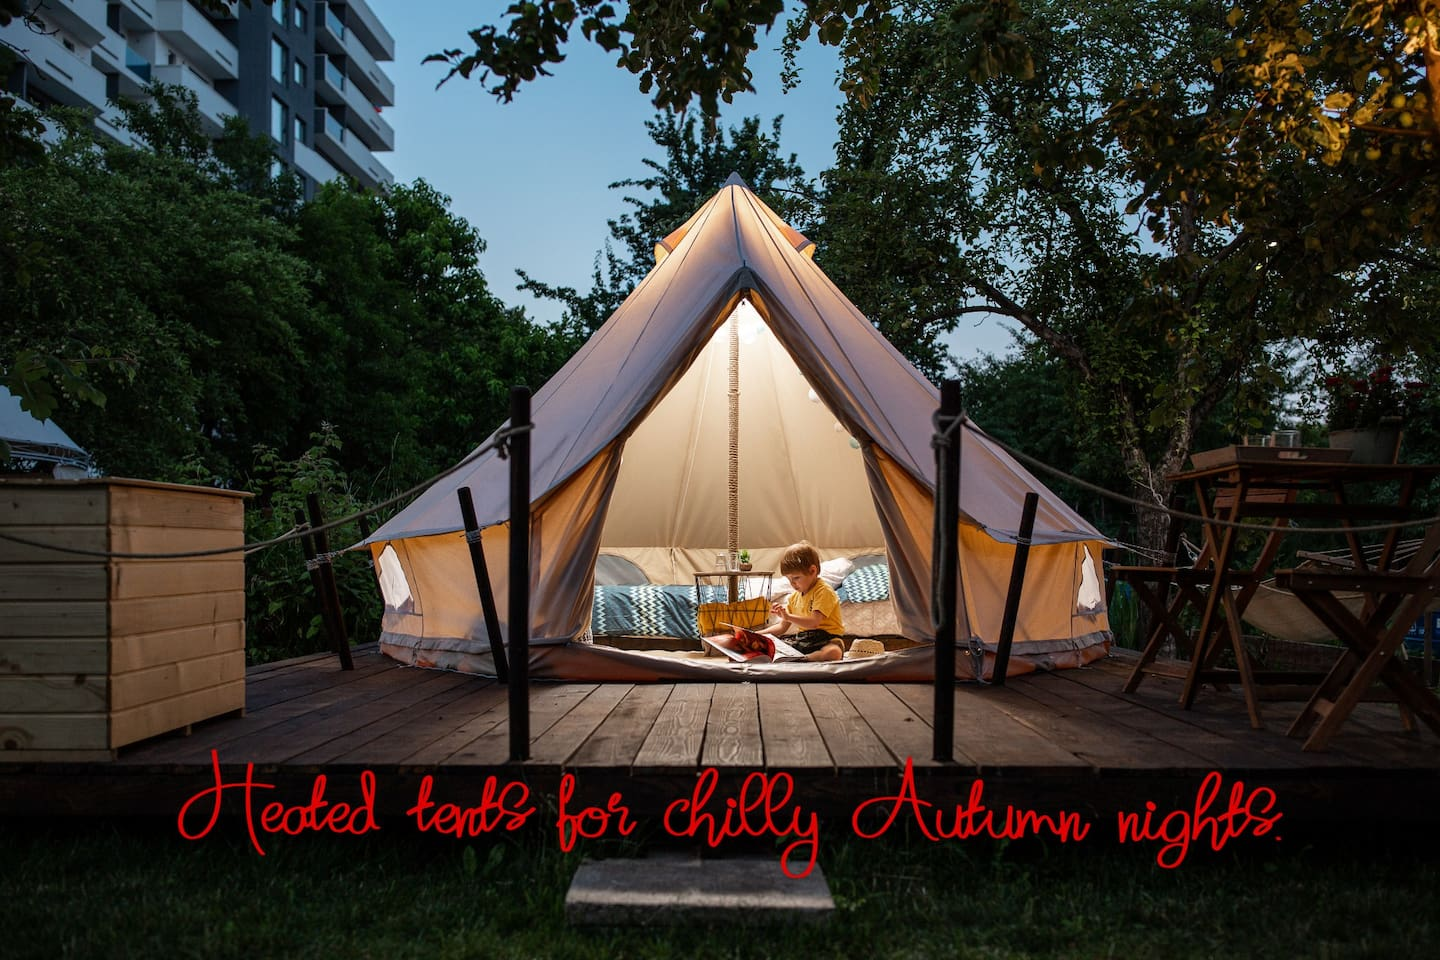 Heated tents for Autumn nights to make you feel even more cozy.